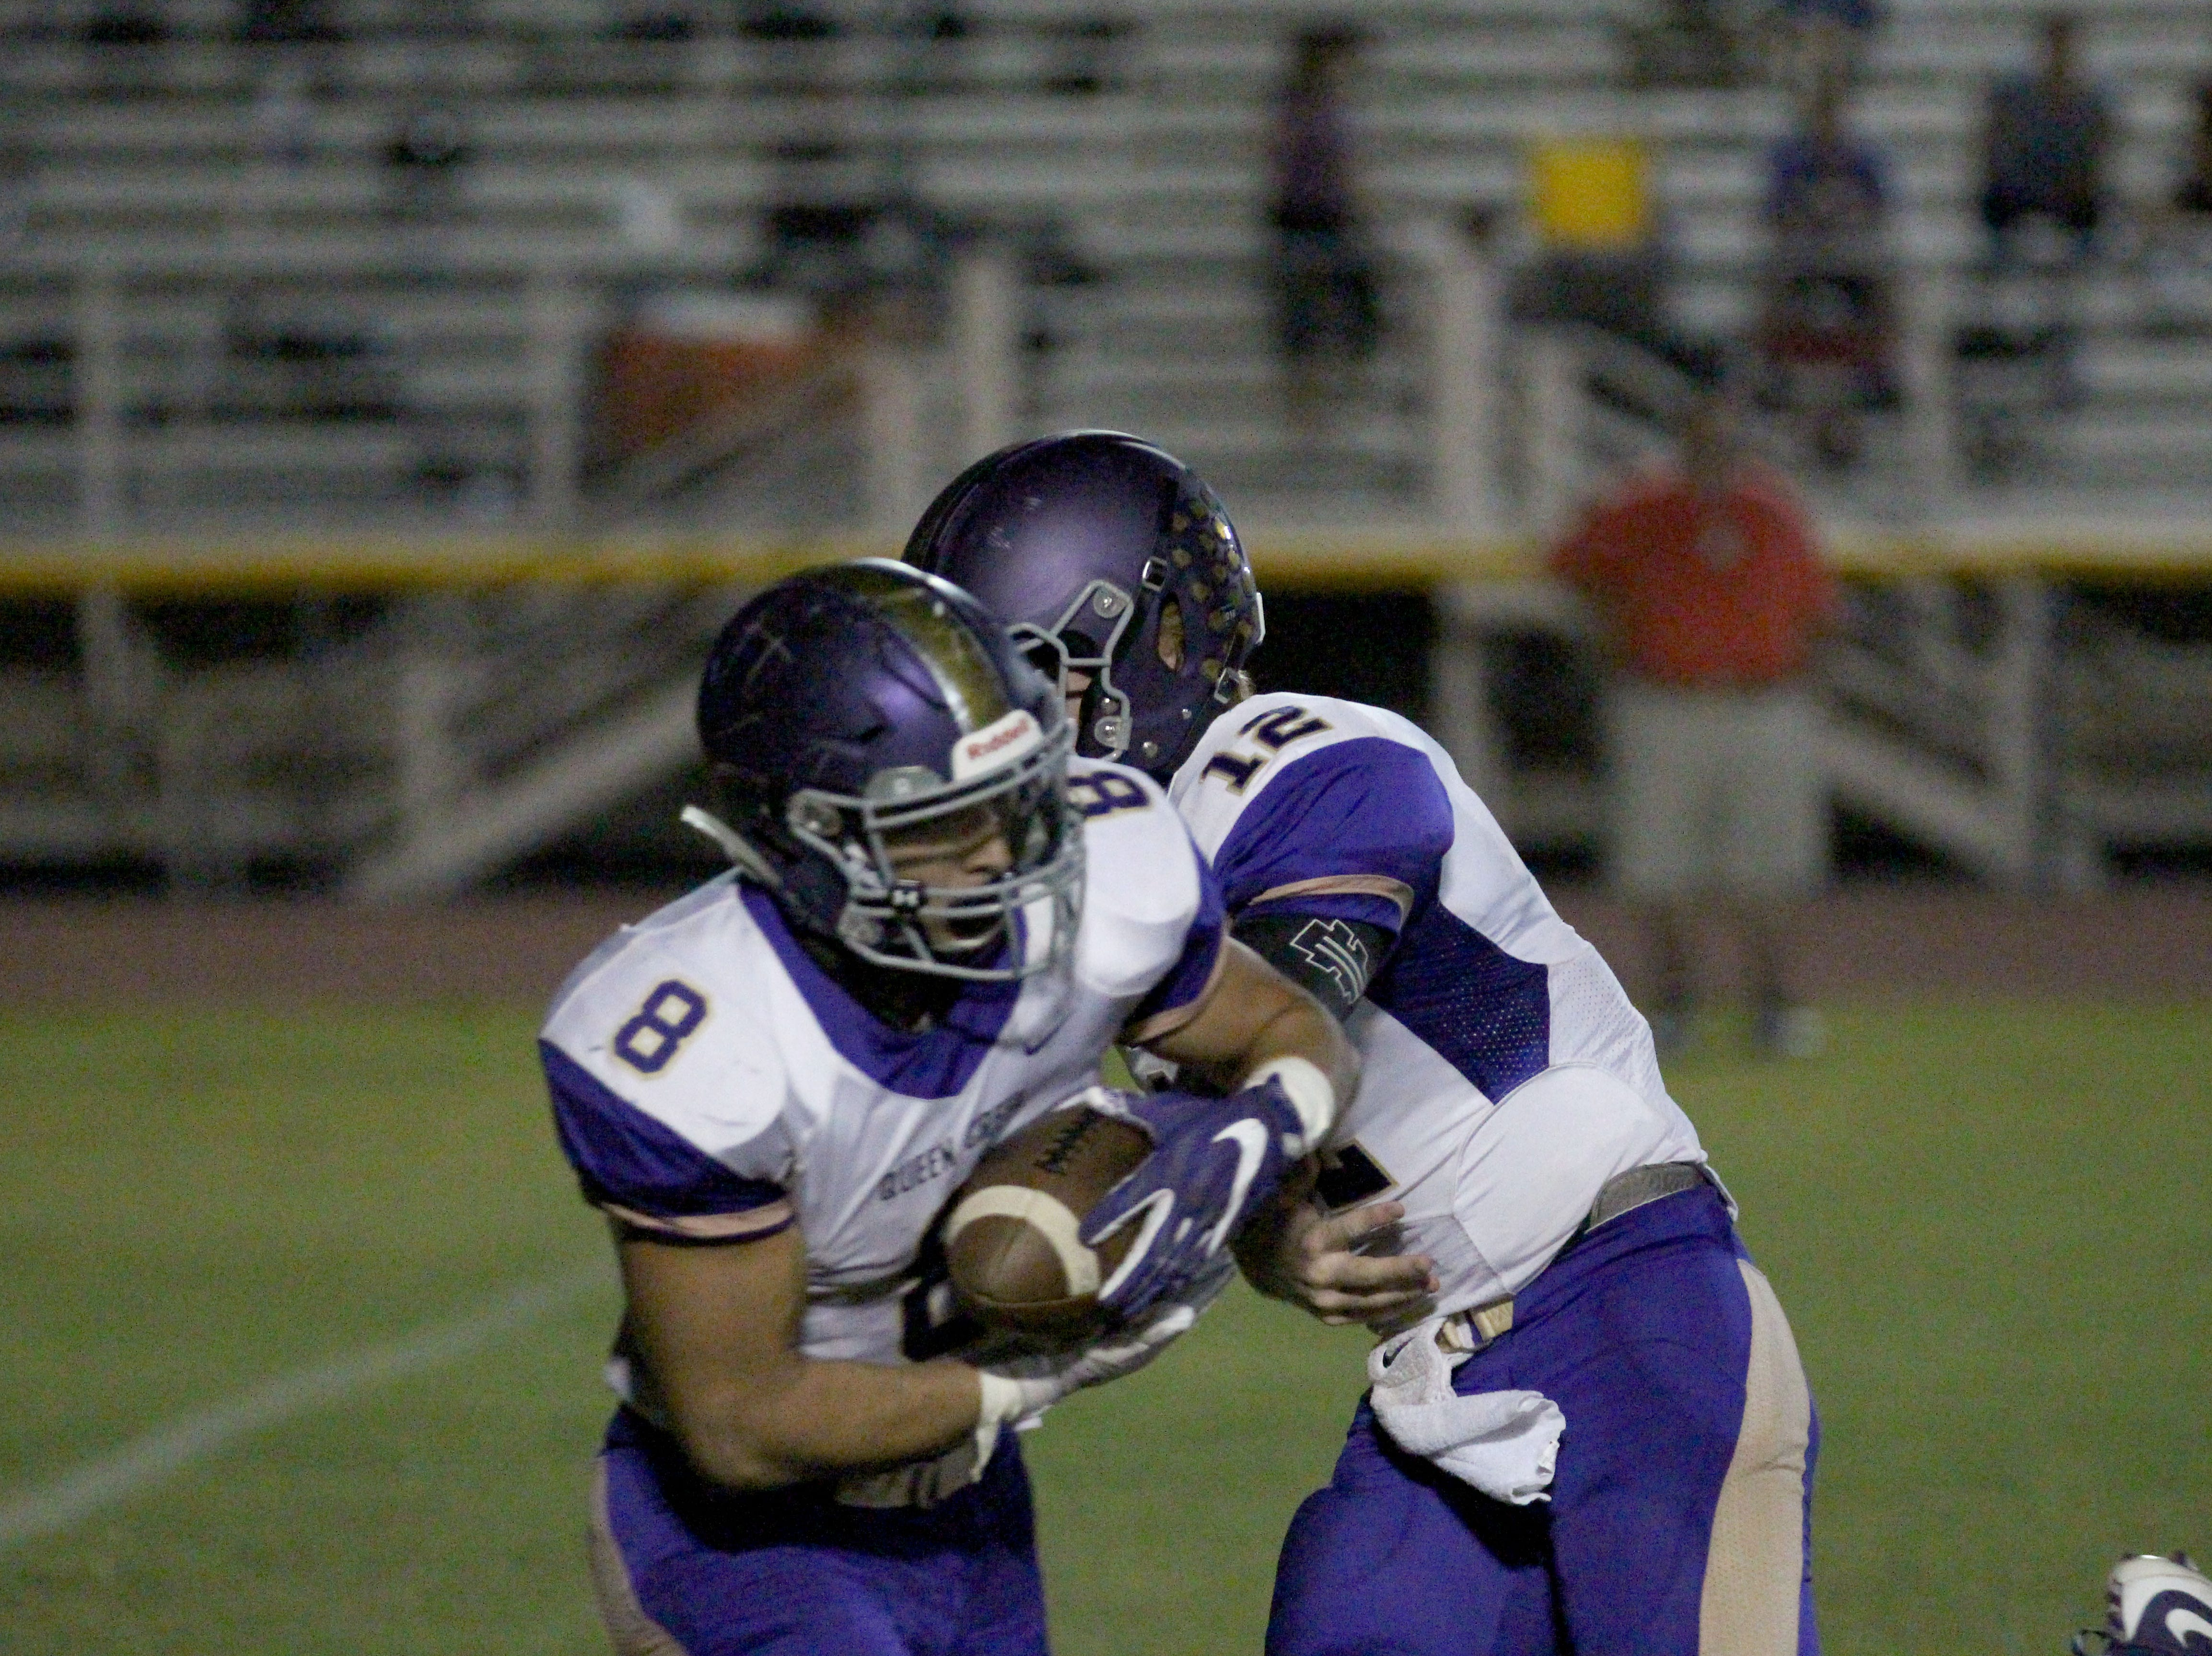 Queen Creek's Dylan Borja takes the handoff during the game against Mountain Pointe on Friday night at Mountain Pointe High School on Sept. 21, 2018.